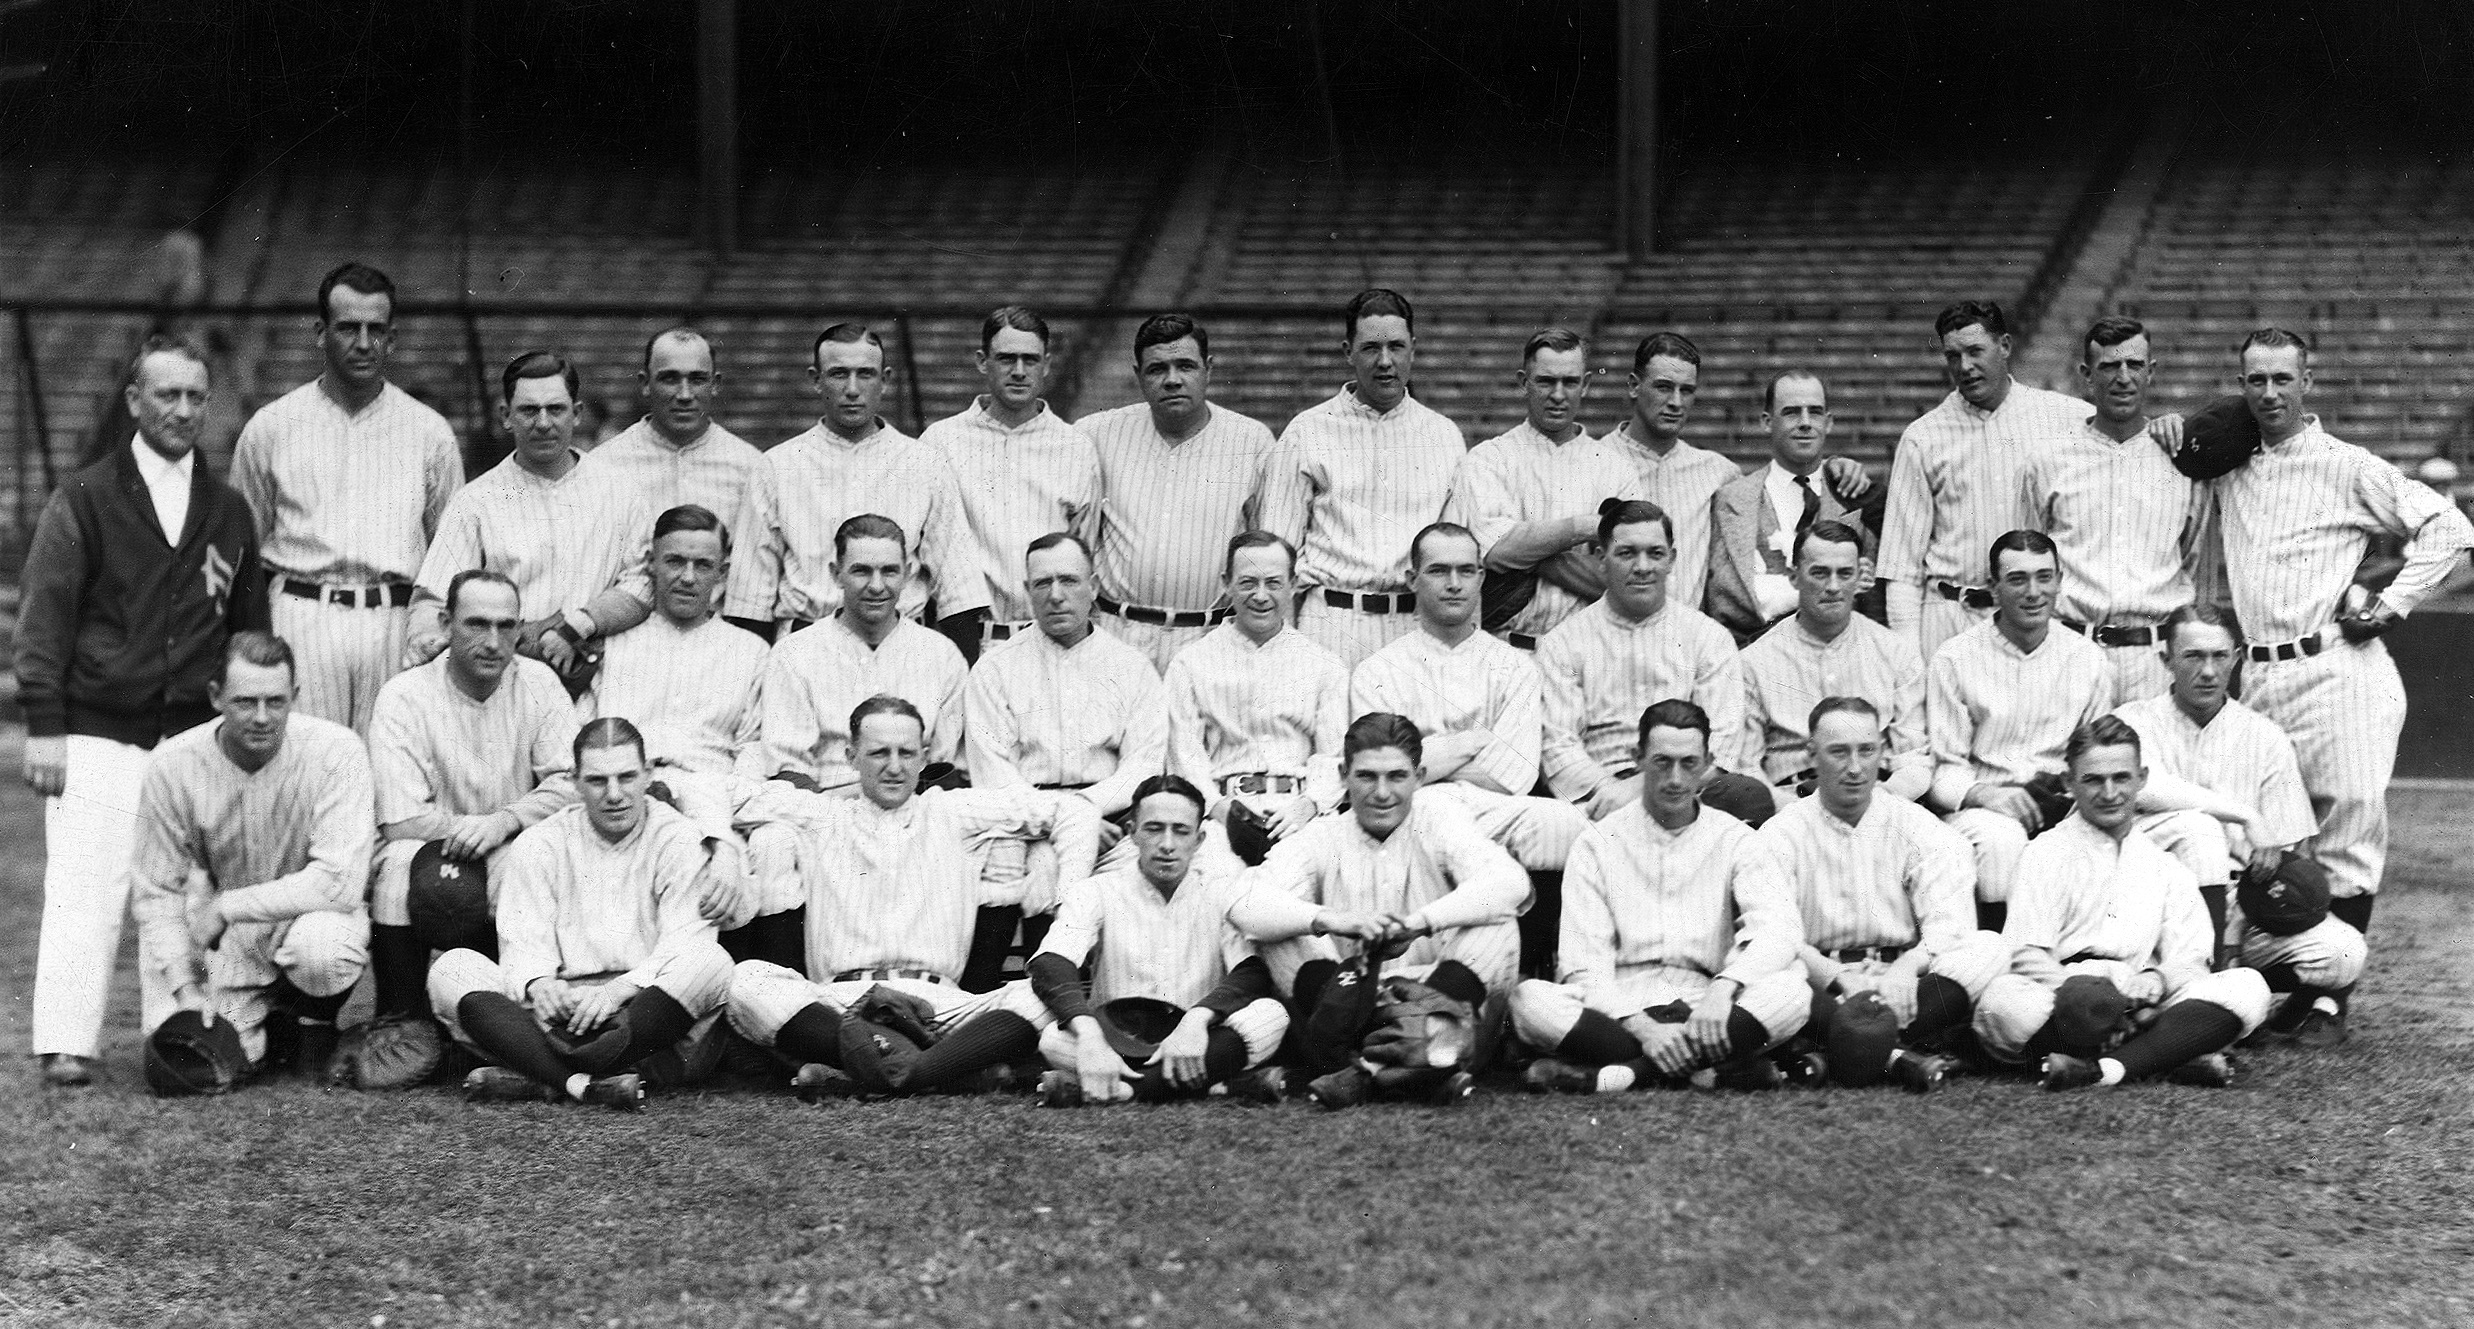 Description 1926 new york yankees team